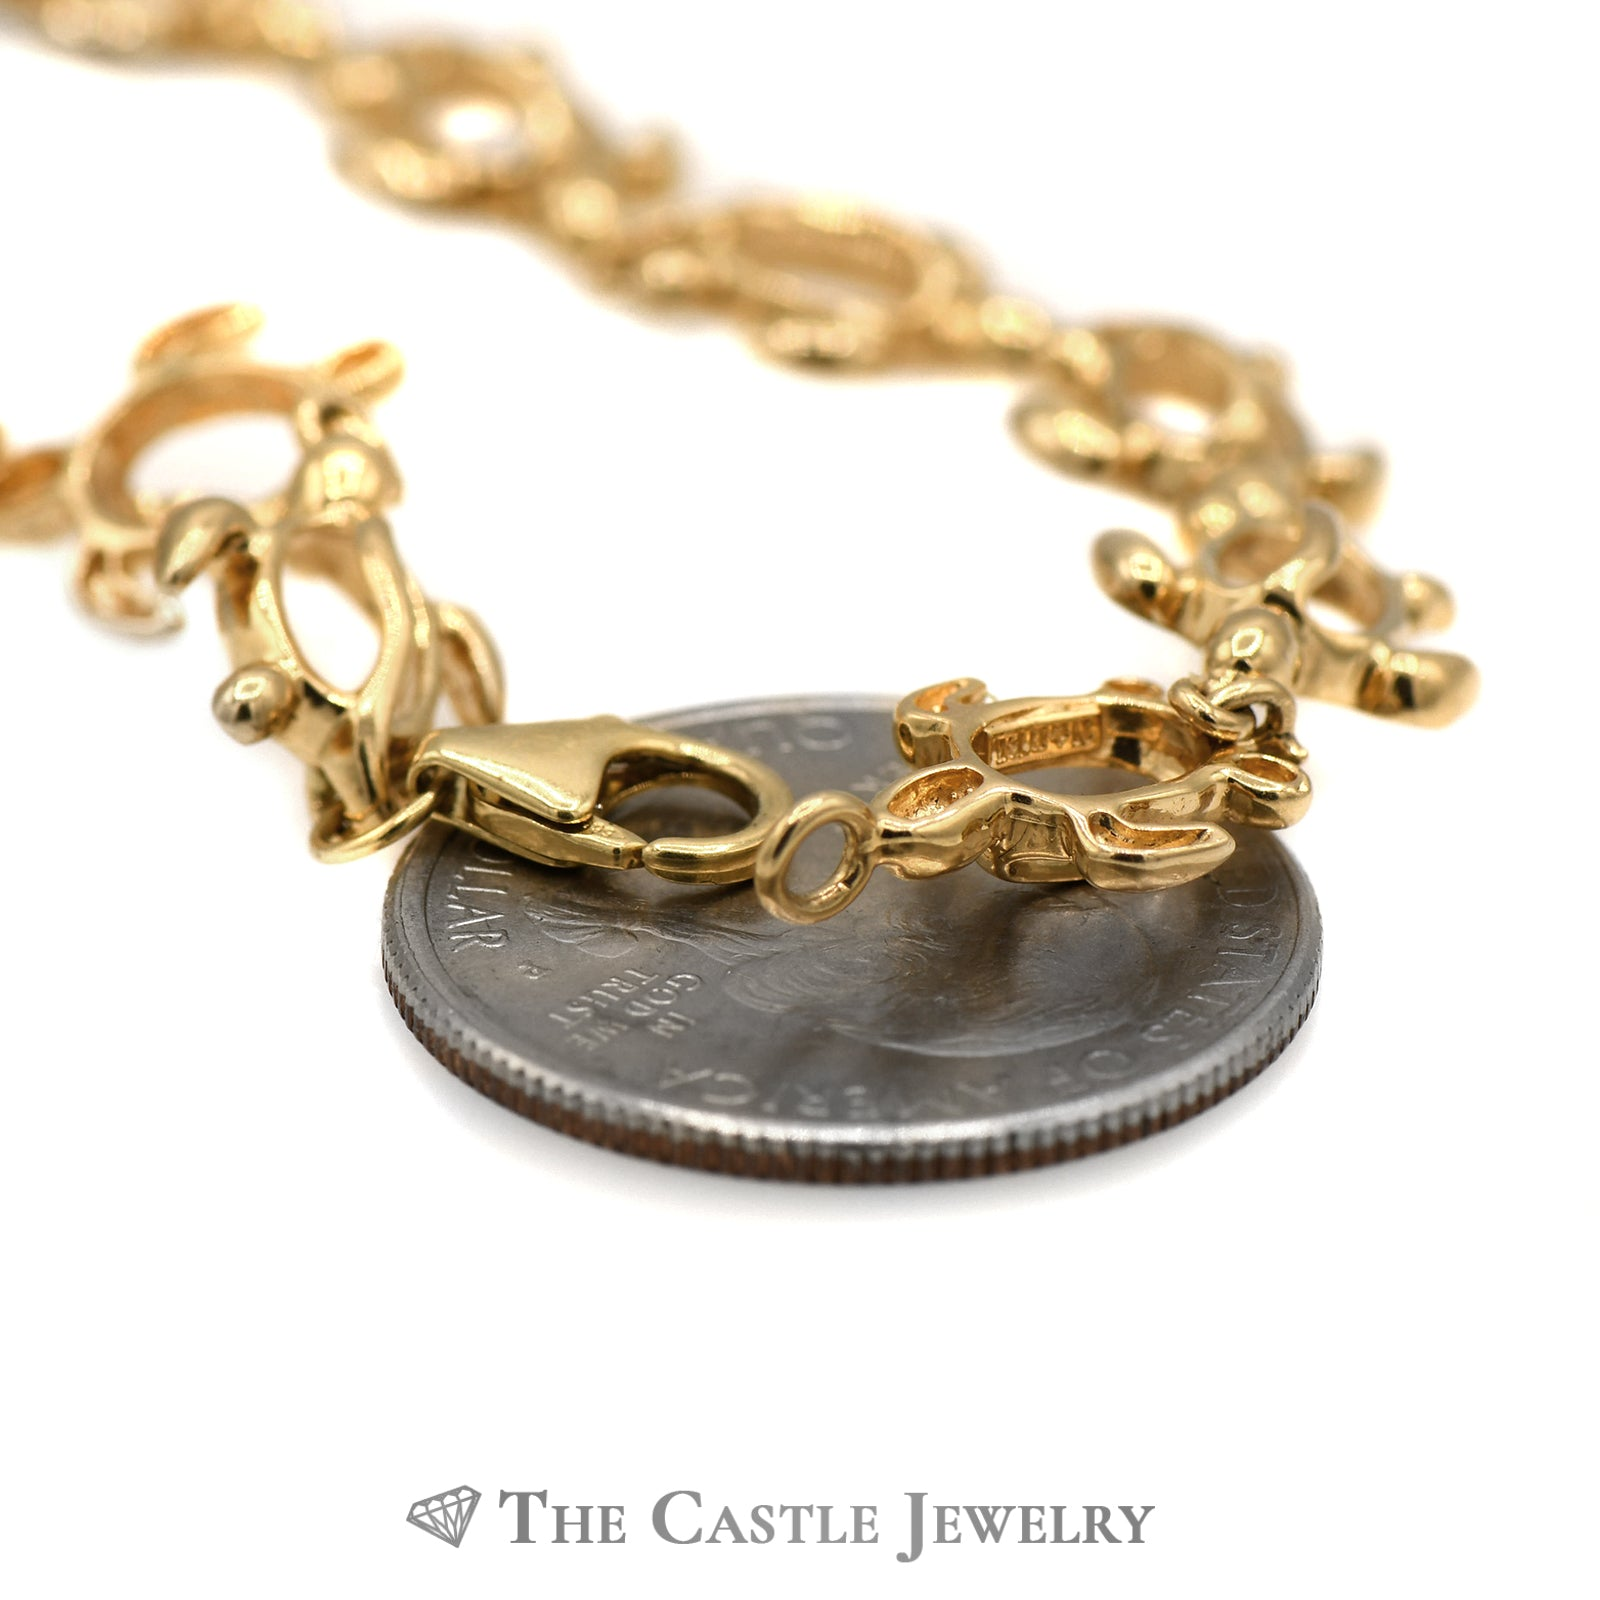 7 Inch Turtle Link Bracelet in 14k Yellow Gold-1